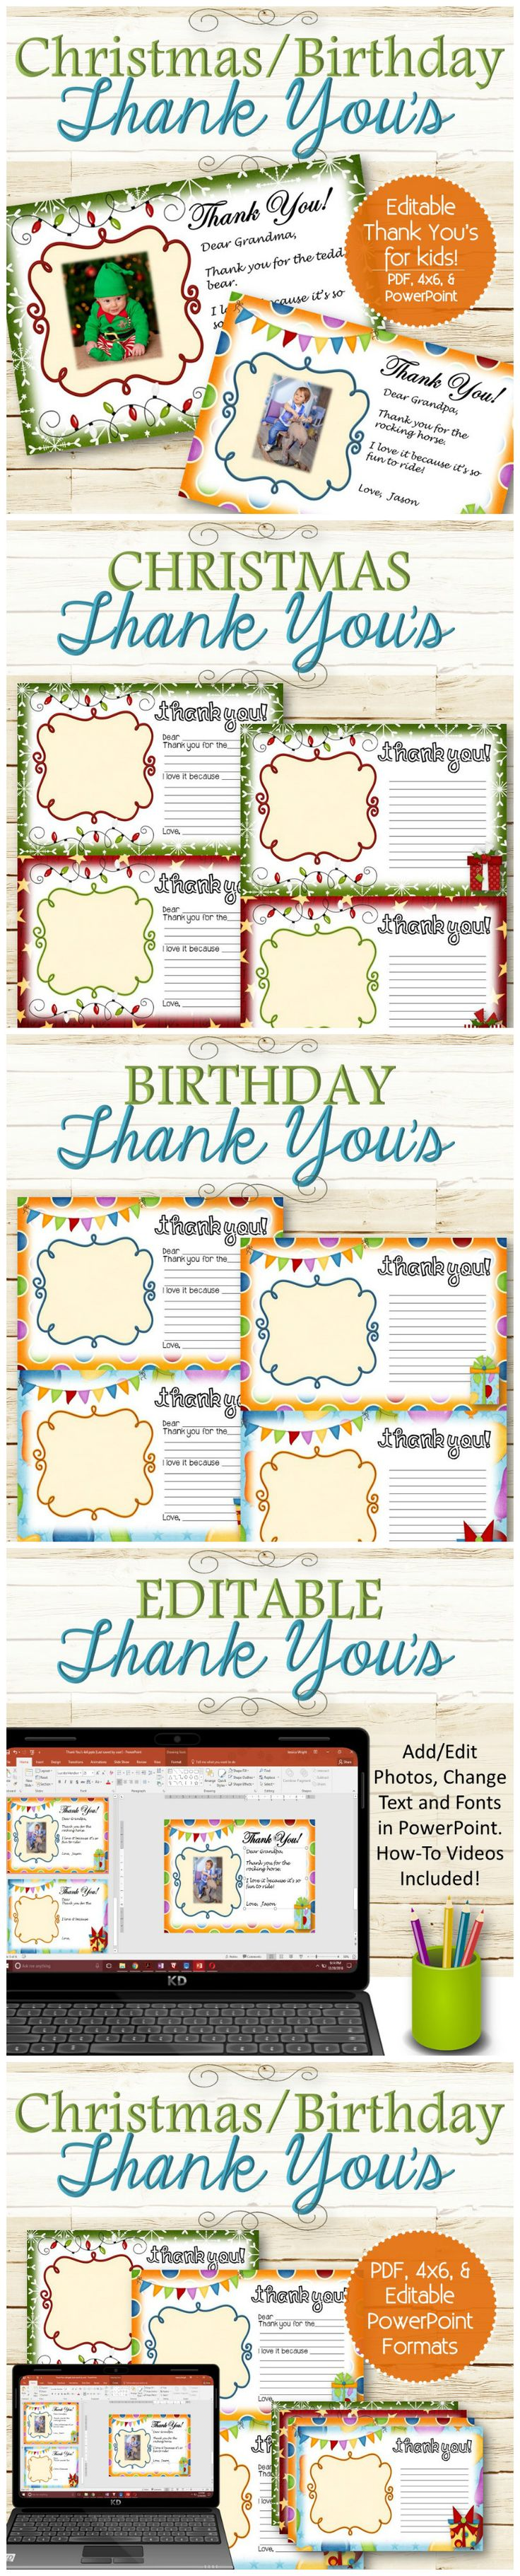 """Editable cute and easy thank you cards for kids to send to others after Christmas or birthdays! Each version comes with a """"fill in the blank"""" card for younger kids and a note area for older kids. There's also a section for a photo or drawing to make it more personal!  Comes with a 8.5""""x11"""" PDF format, 4x6 JPG format, editable PowerPoint format, and """"How-To"""" videos."""